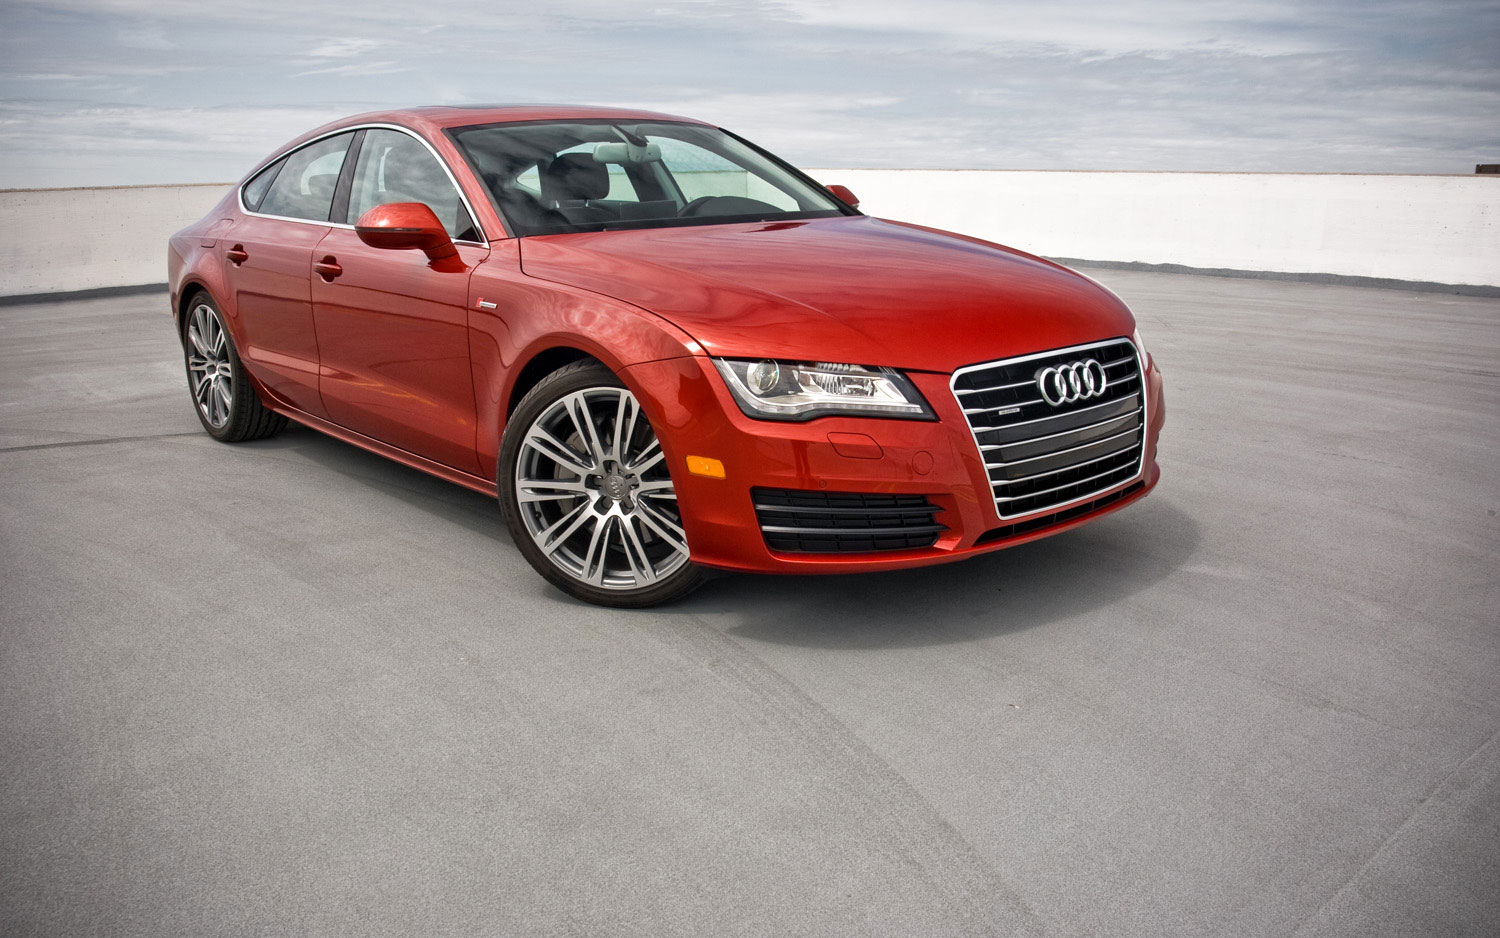 2012 Audi A7 Premium Plus Front Right Side View4